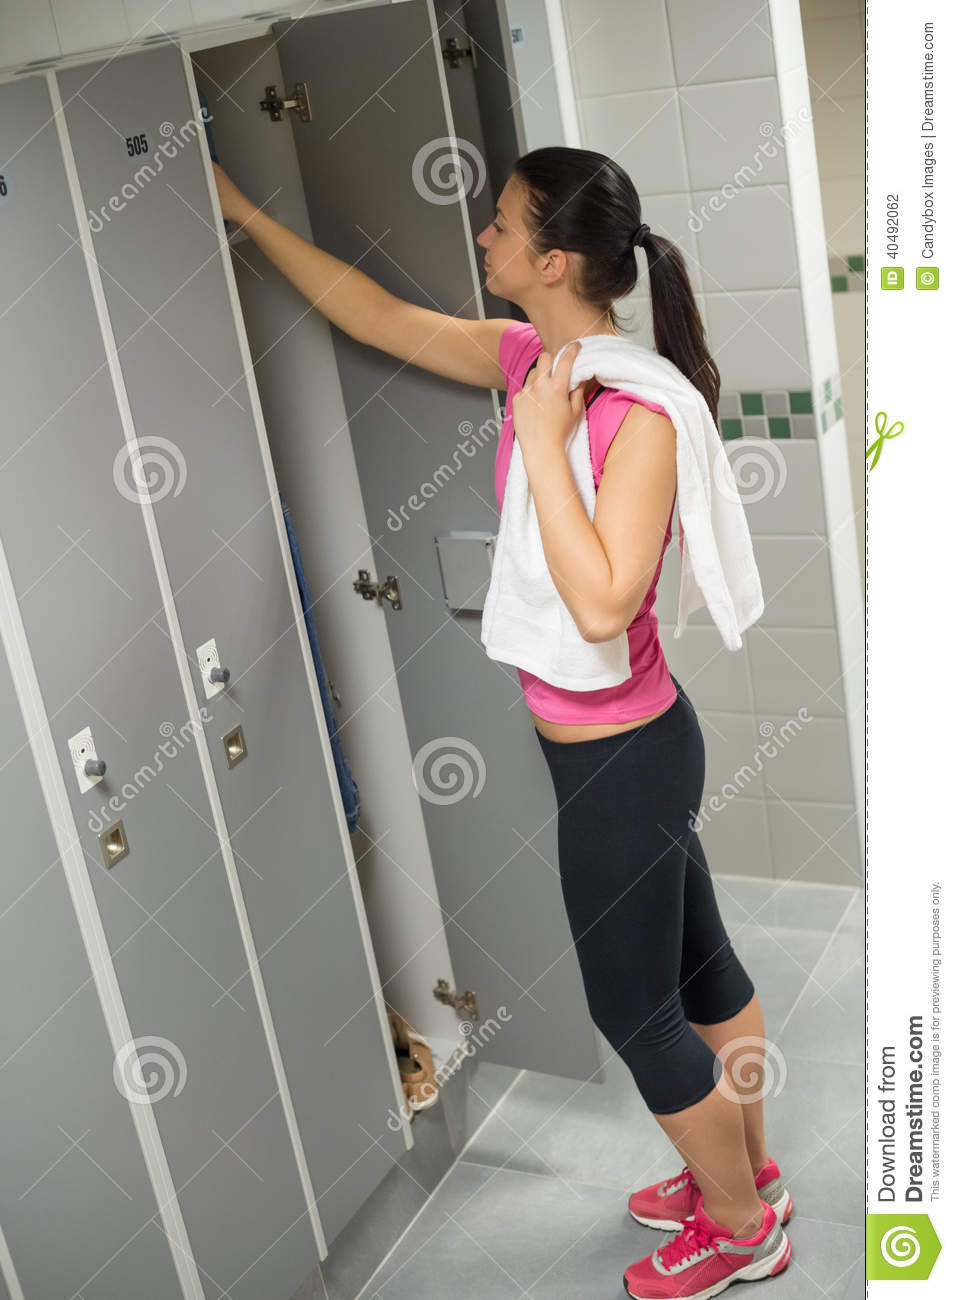 Woman opening locker at gym stock photo cartoondealer